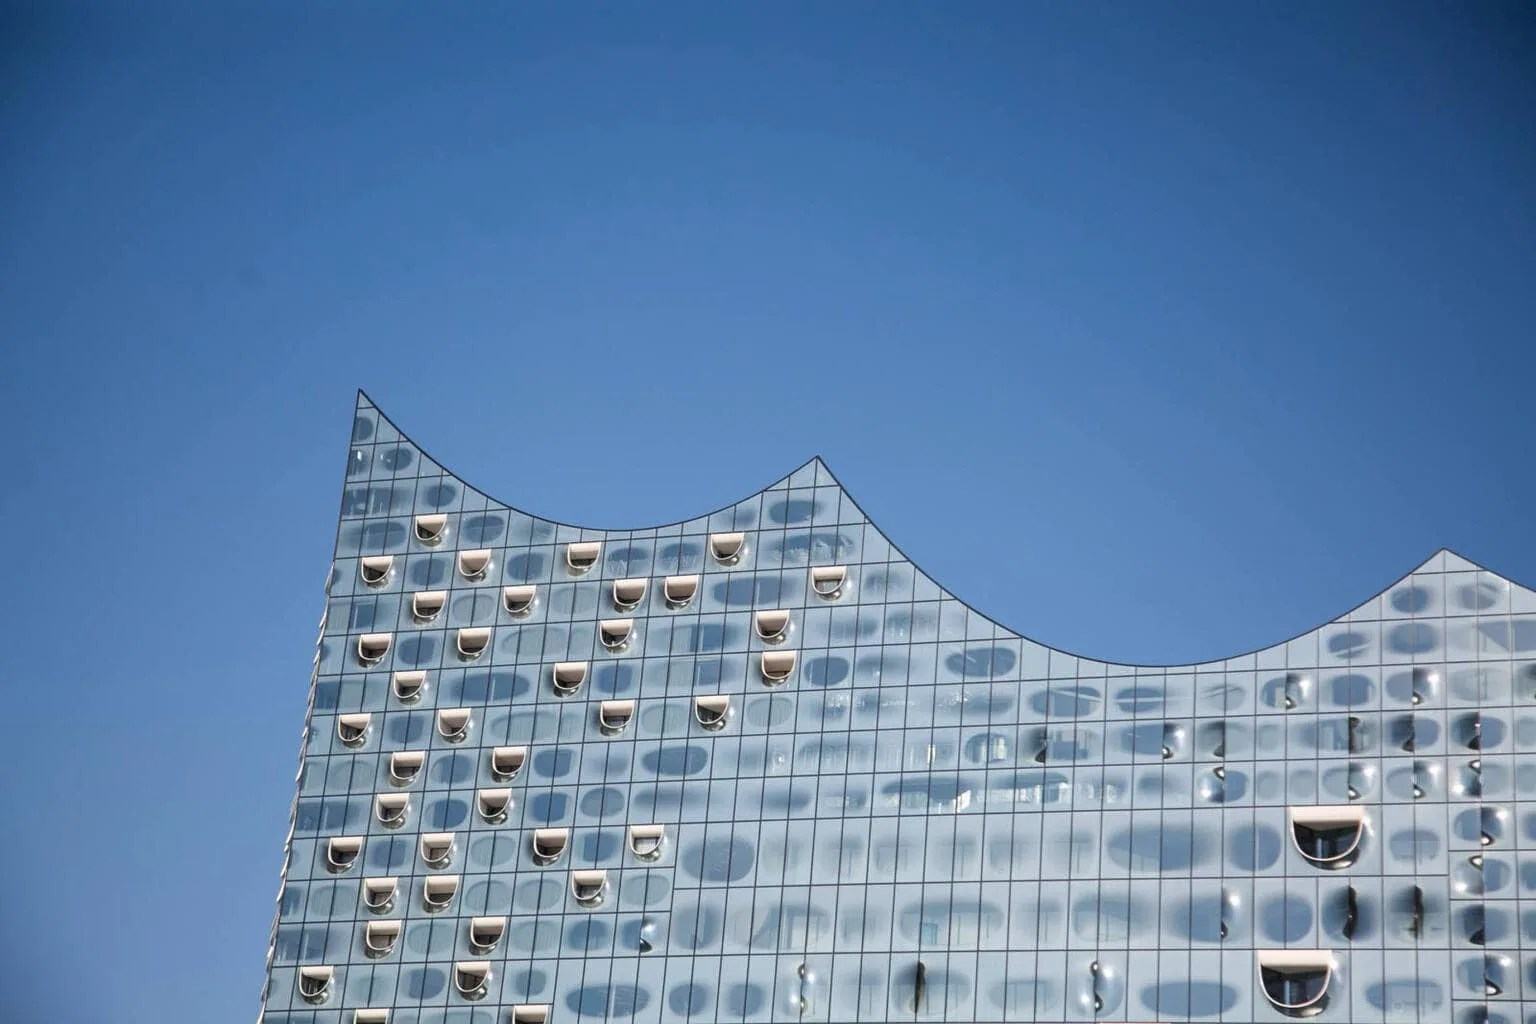 The Elbphilharmonie Plaza with Kids